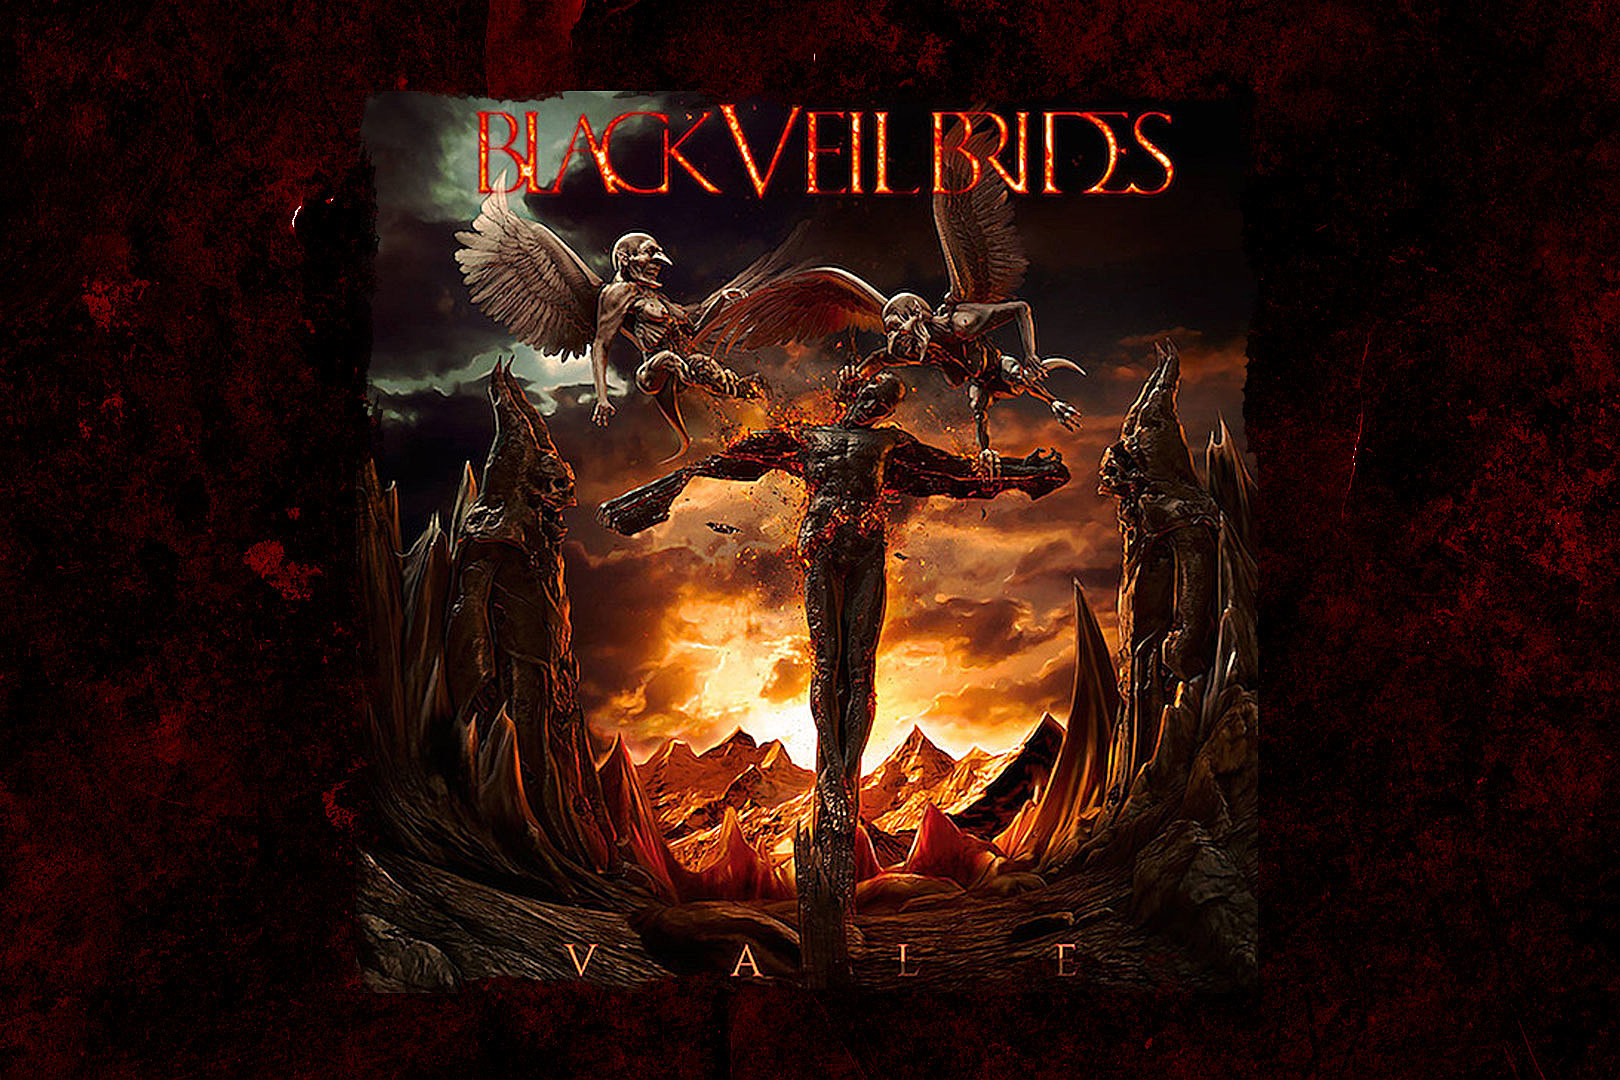 Black Veil Brides Are 'Well and Strong' on Memorable 'Vale' Disc – Album Review